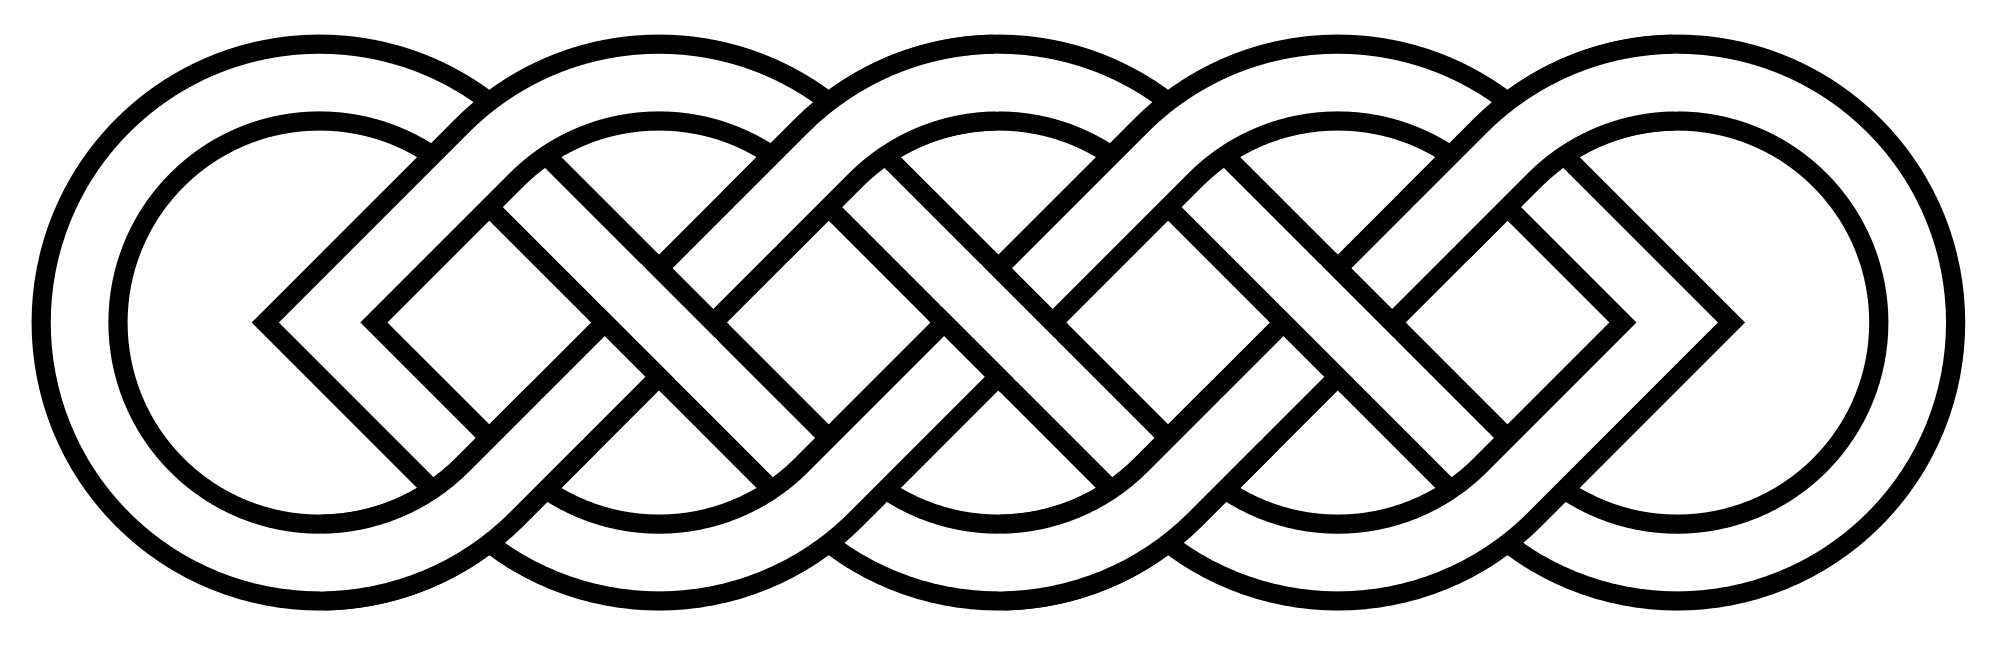 graphic library stock Datei knot basic svg. Celtic cross clipart black and white